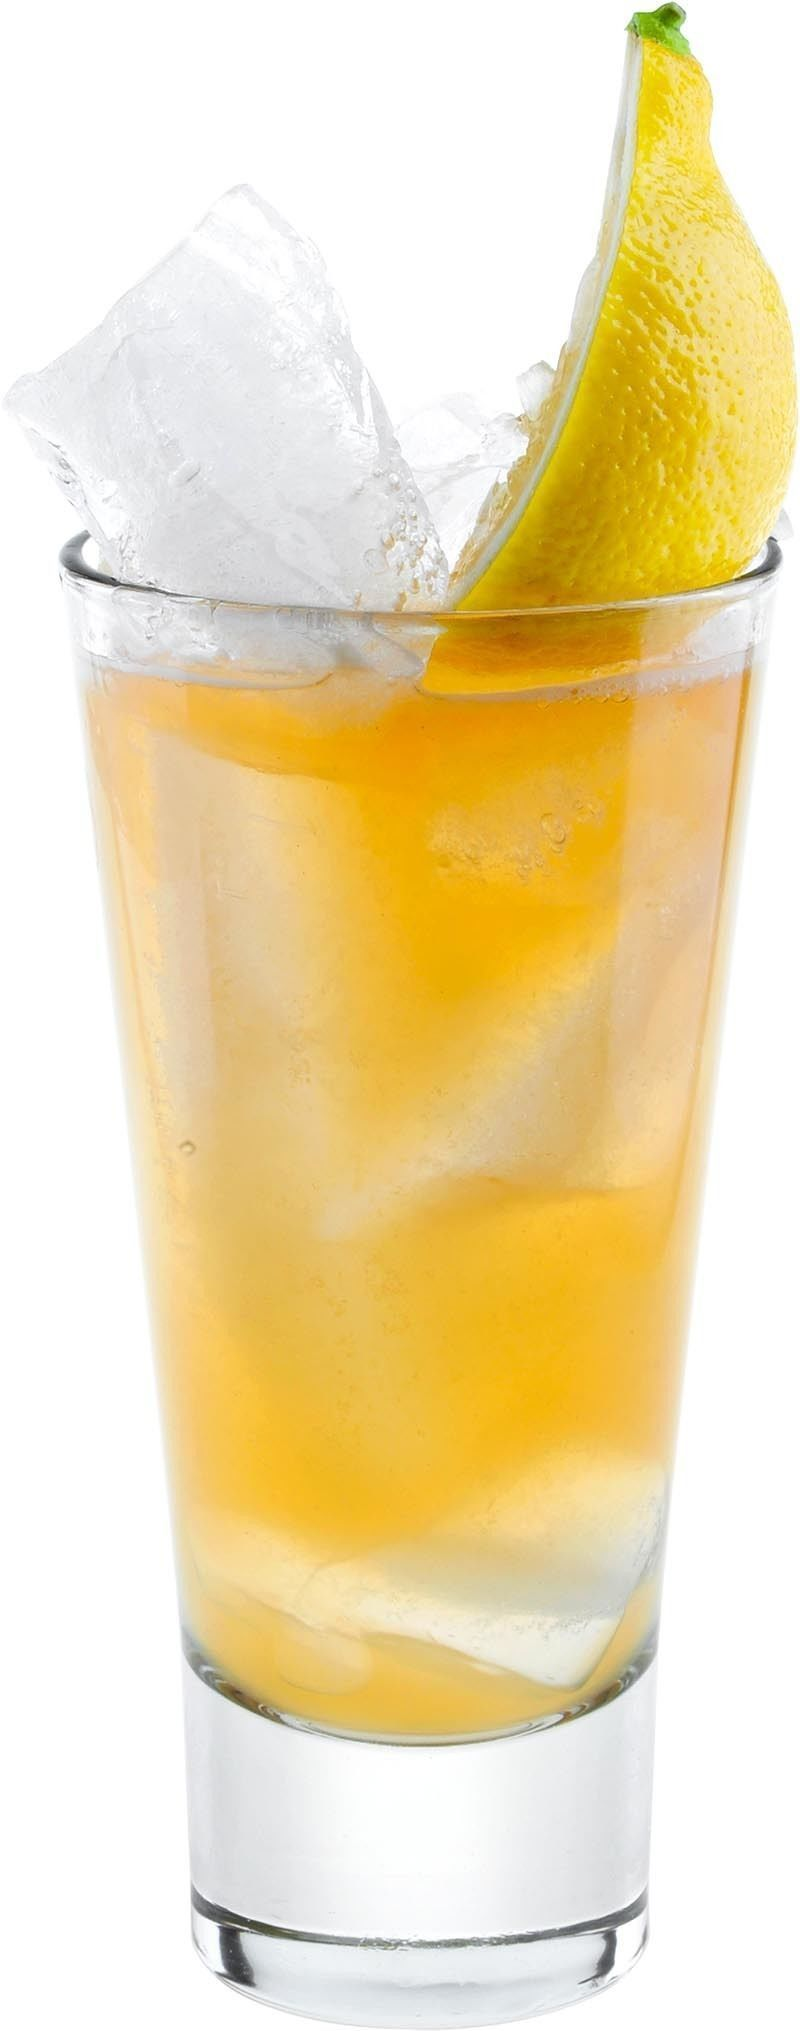 How to Make the Gin with Peach Tea